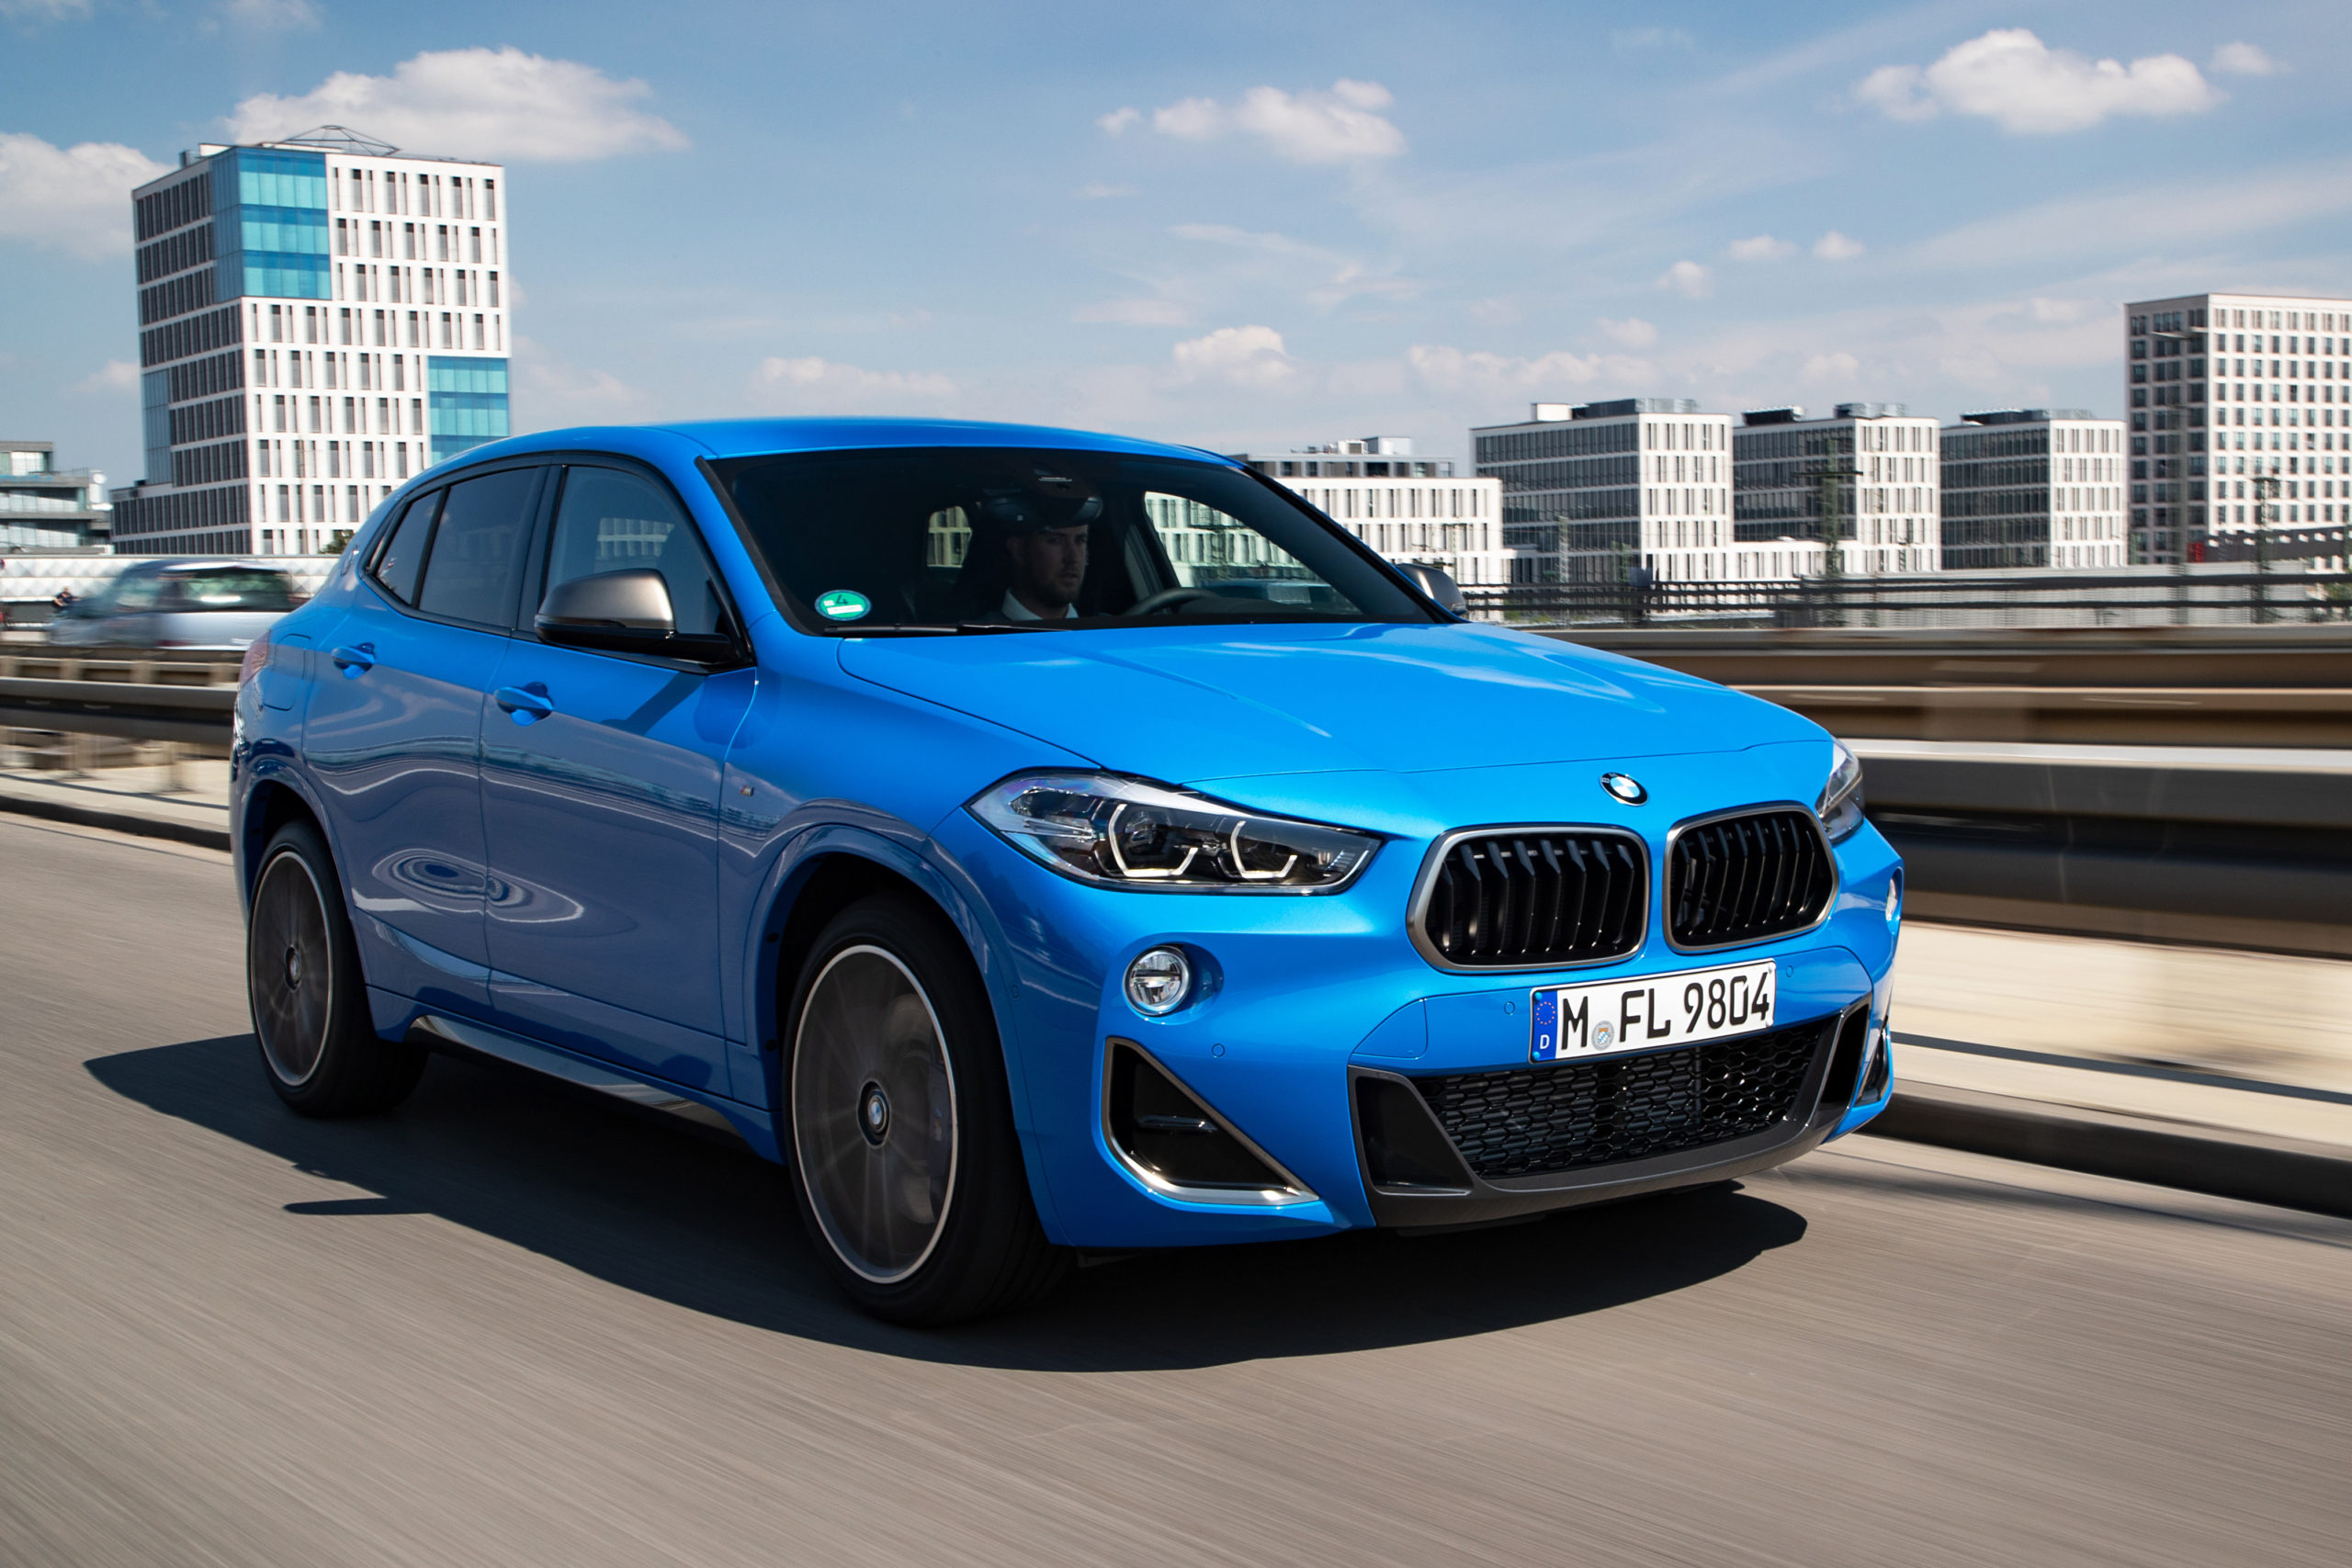 BMW compact luxury car